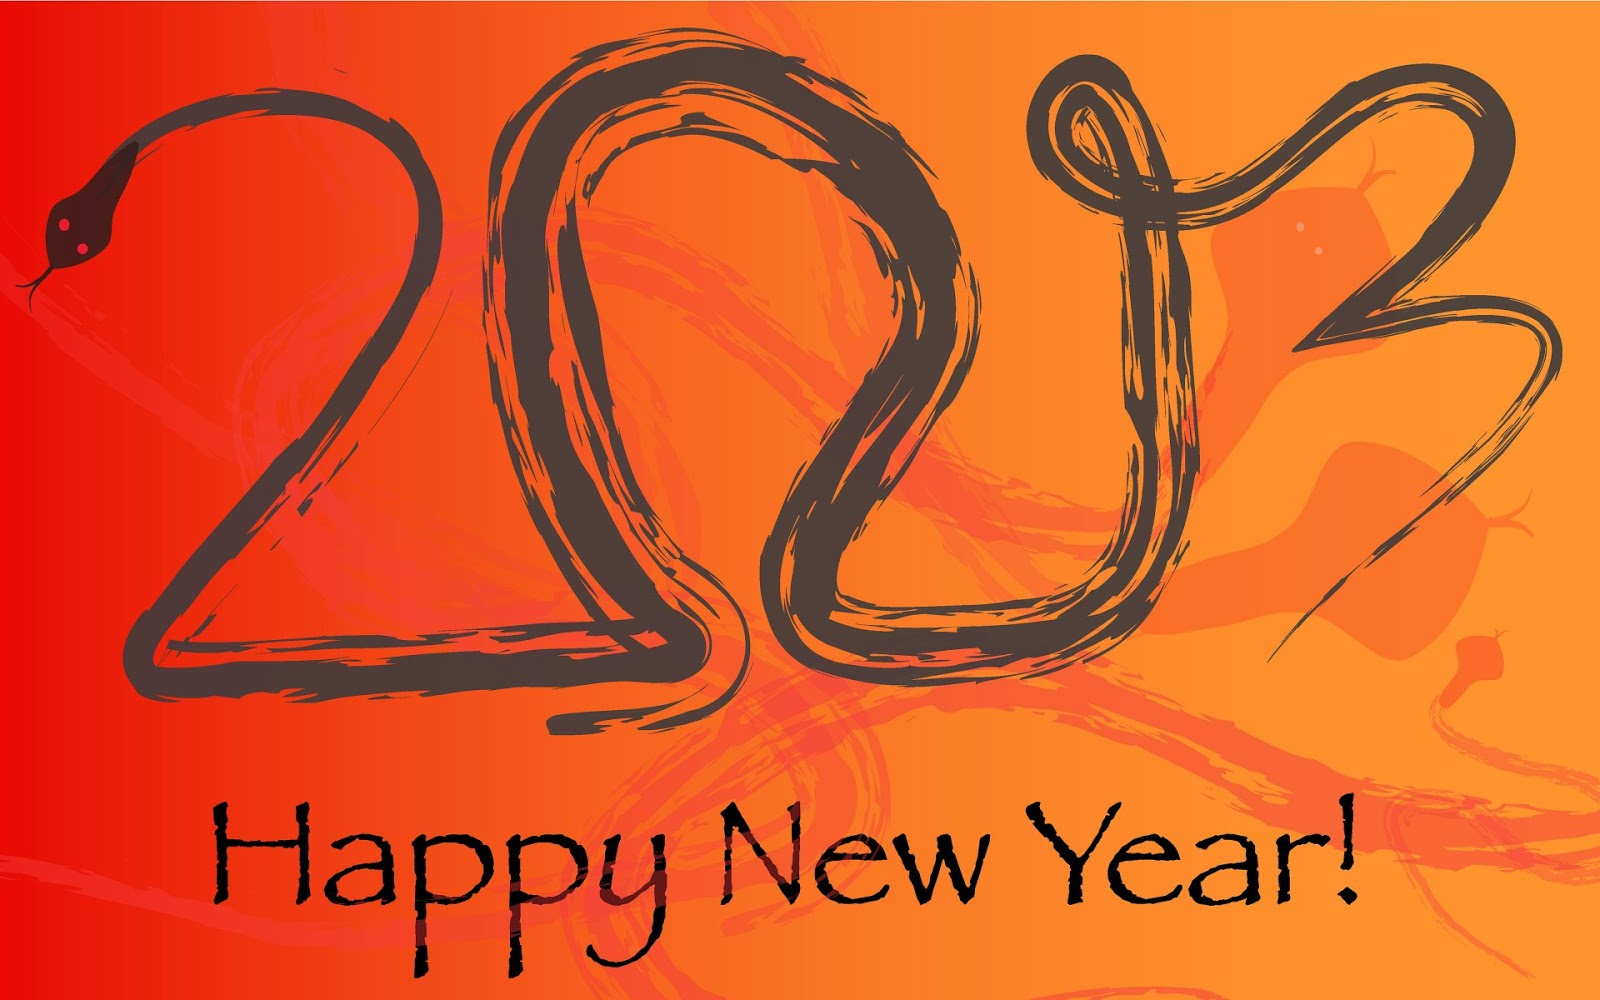 Happy Chinese New Year HD Wallpaper of New Year   hdwallpaper2013com 1600x1000